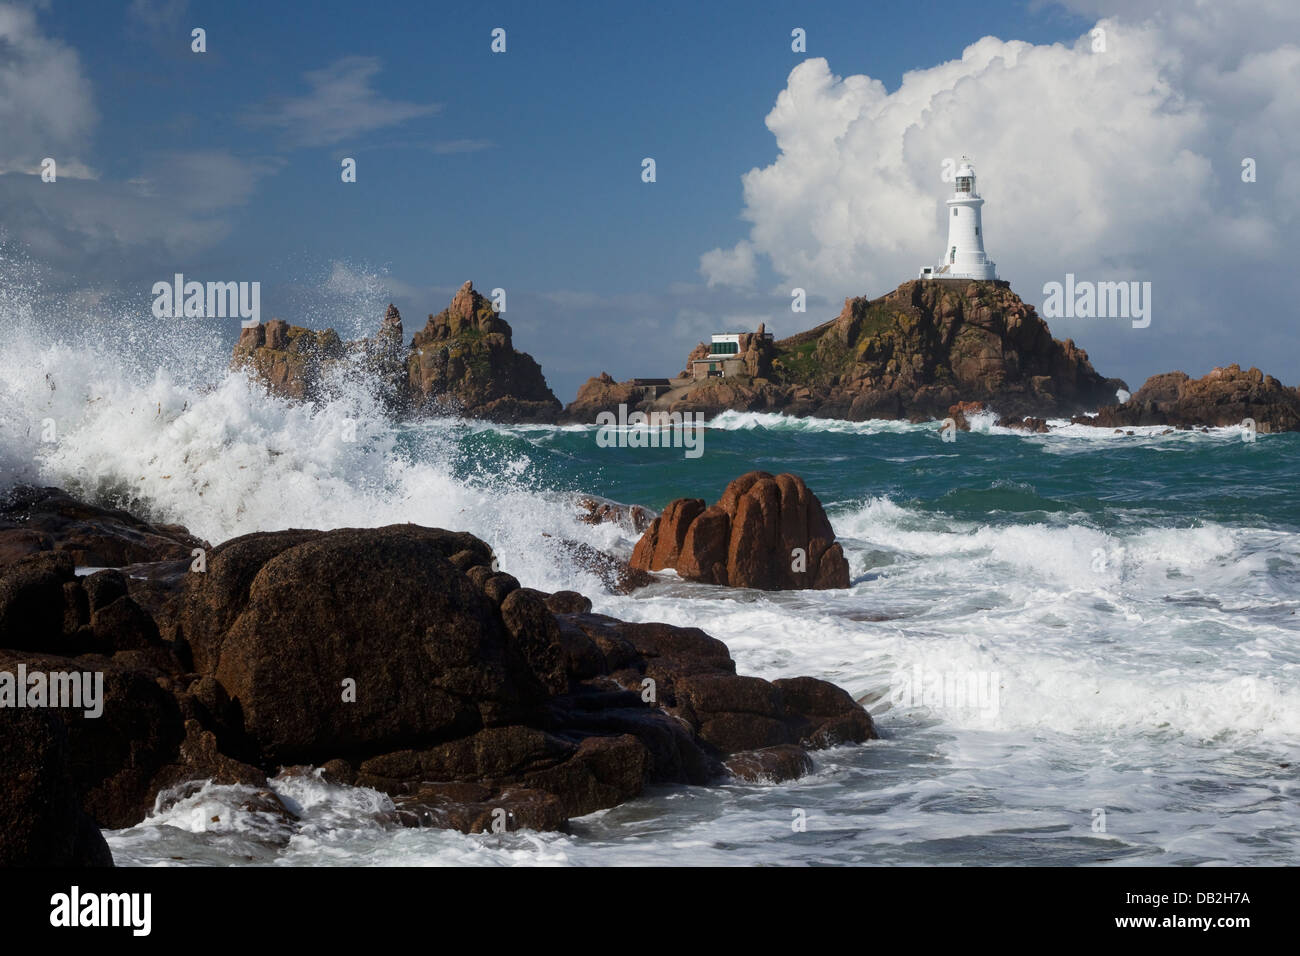 Corbiere Lighthouse Jersey Channel Islands, UK LA005939 - Stock Image